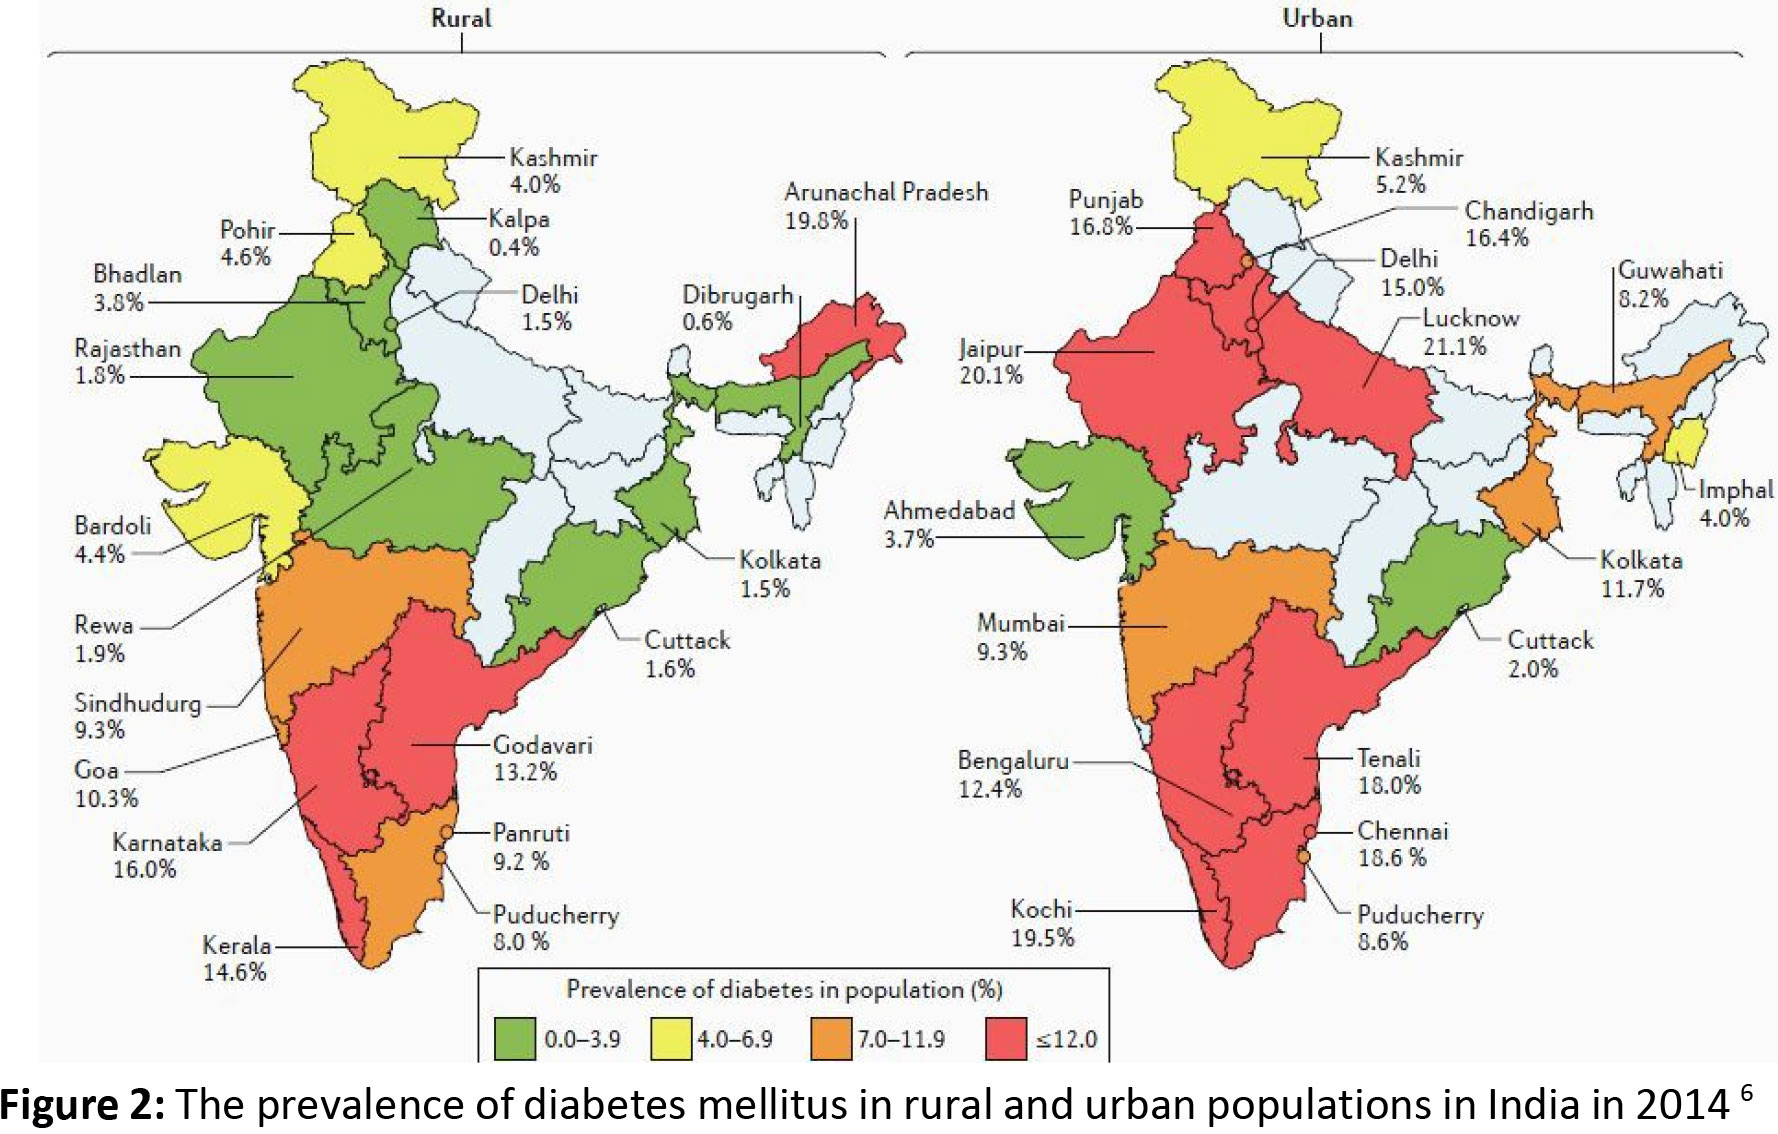 Prevalence of DM in rural and urban populations in India 2014